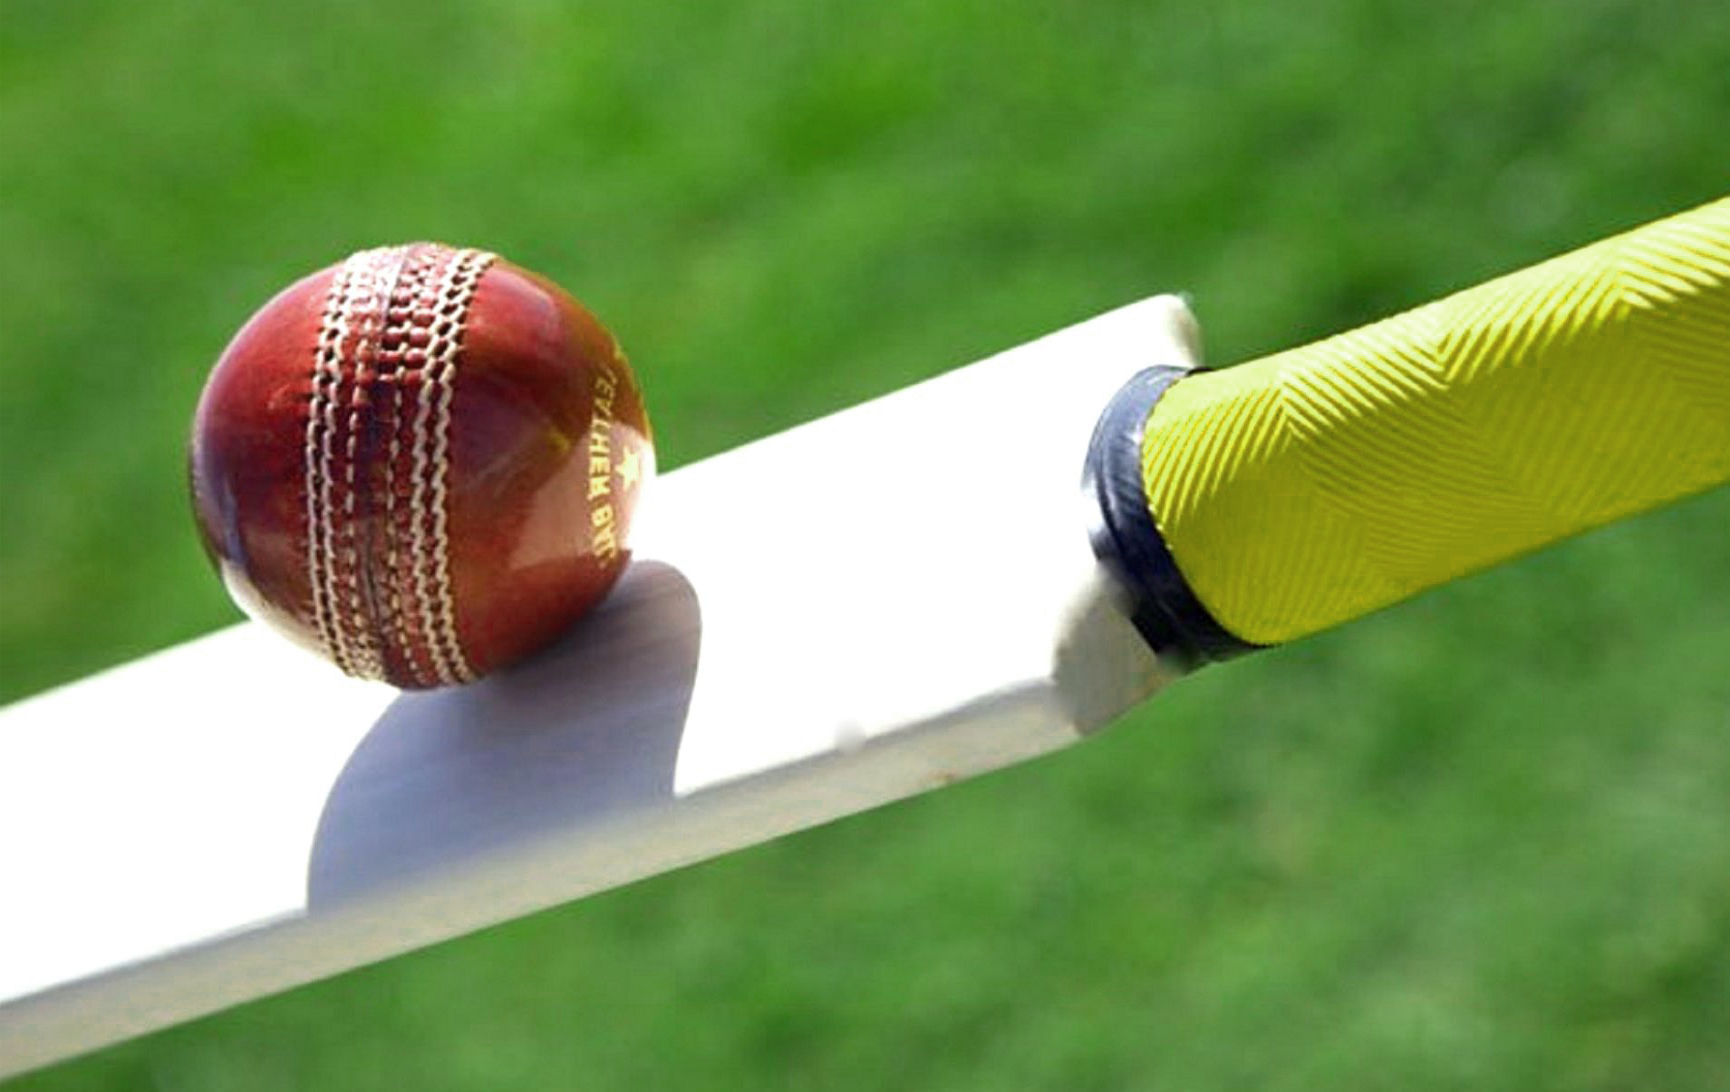 Pallisree Cricket Coaching Blog The Best Cricket Bat For The Leather Ball